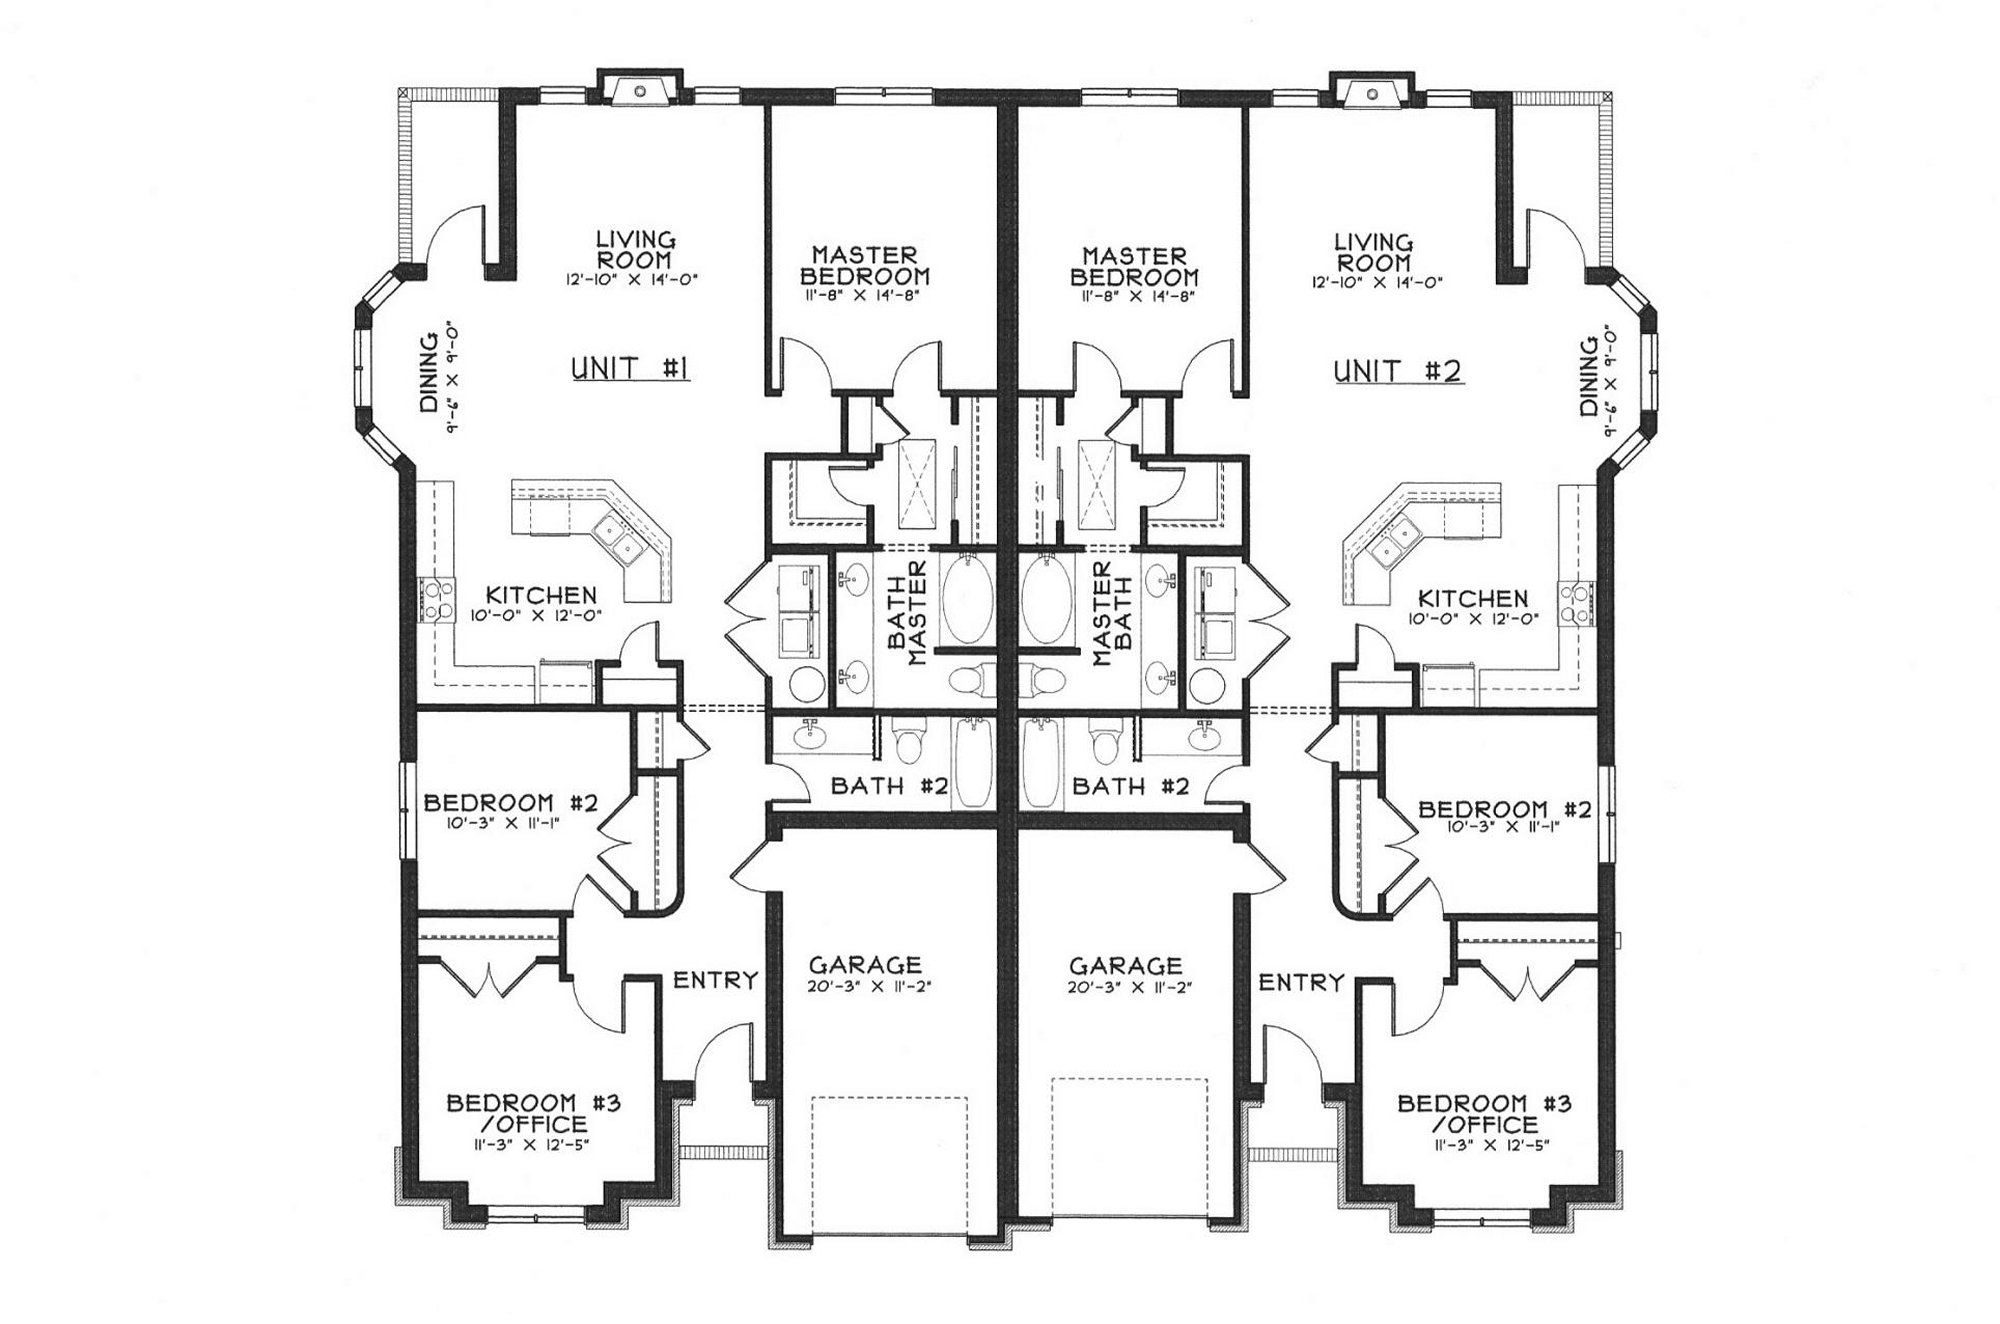 Duplex House Plans Free Download Modern Designs Floor cubtab